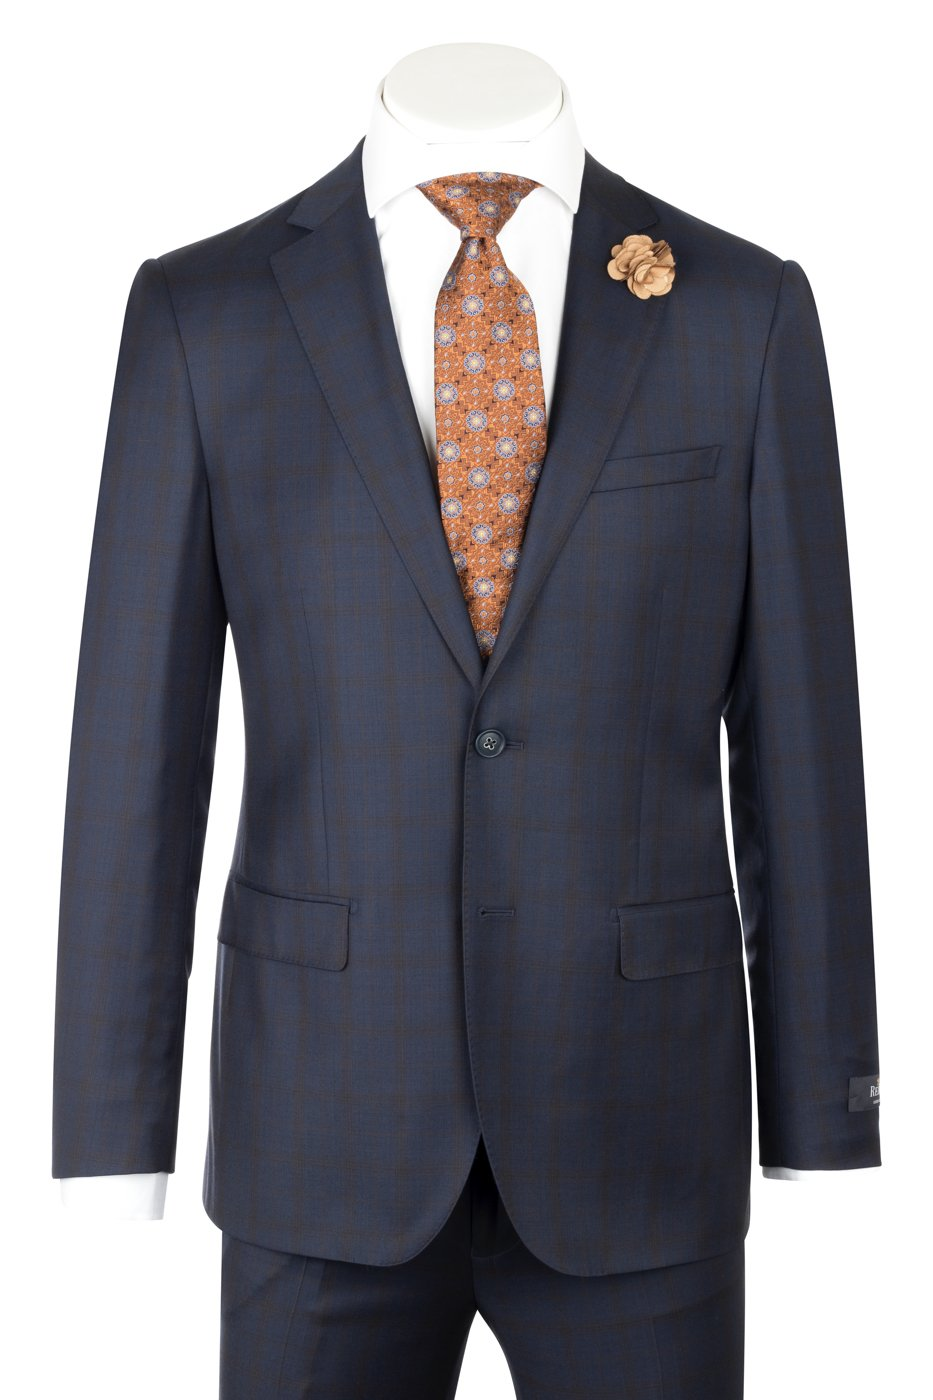 Porto Slim Fit, Navy with Copper windowpane, Pure Wool Suit by Reda Cloth by Canaletto Menswear CR188011/5